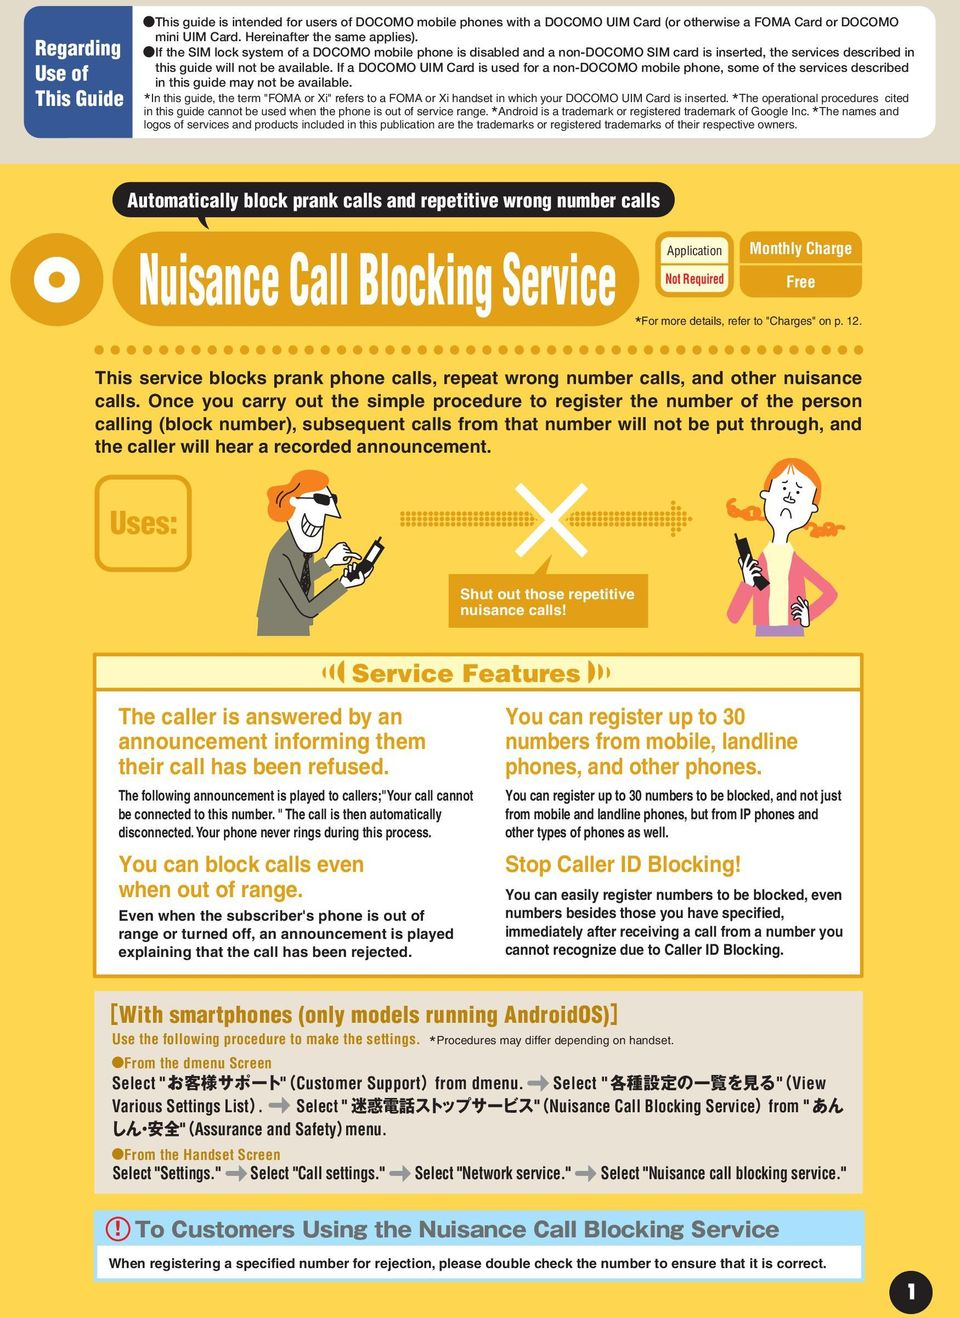 If a DOCOMO UIM Card is used for a non-docomo mobile phone, some of the services described in this guide may not be available.